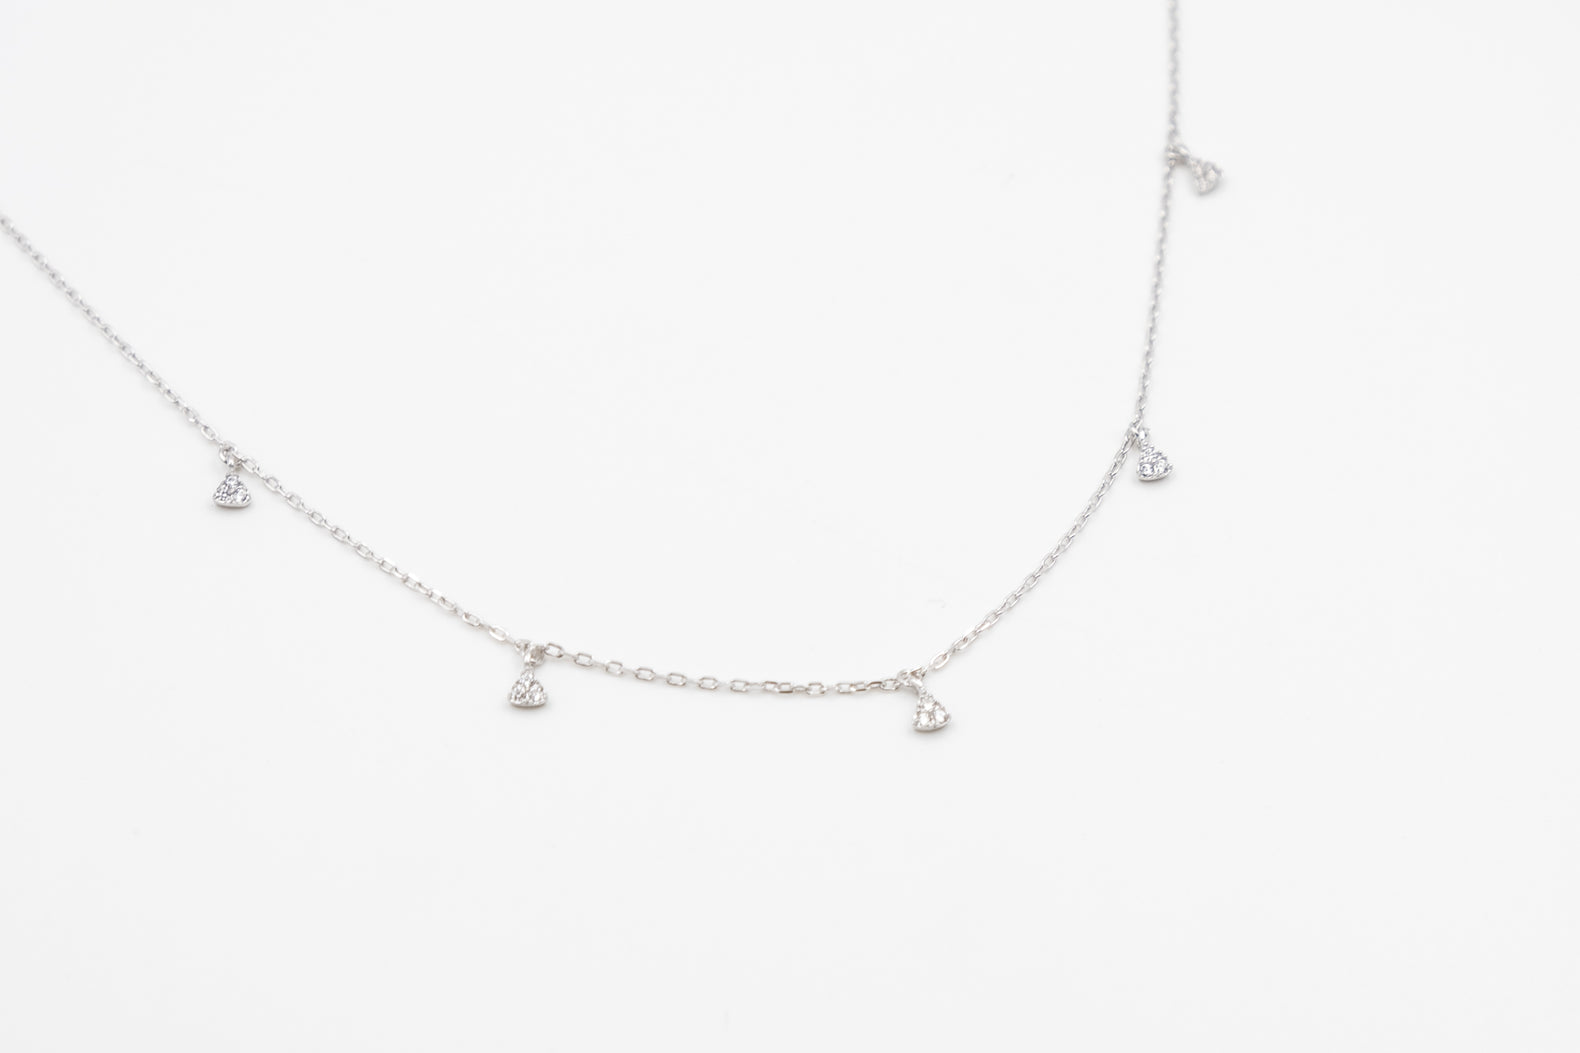 Silver Glittery Necklace